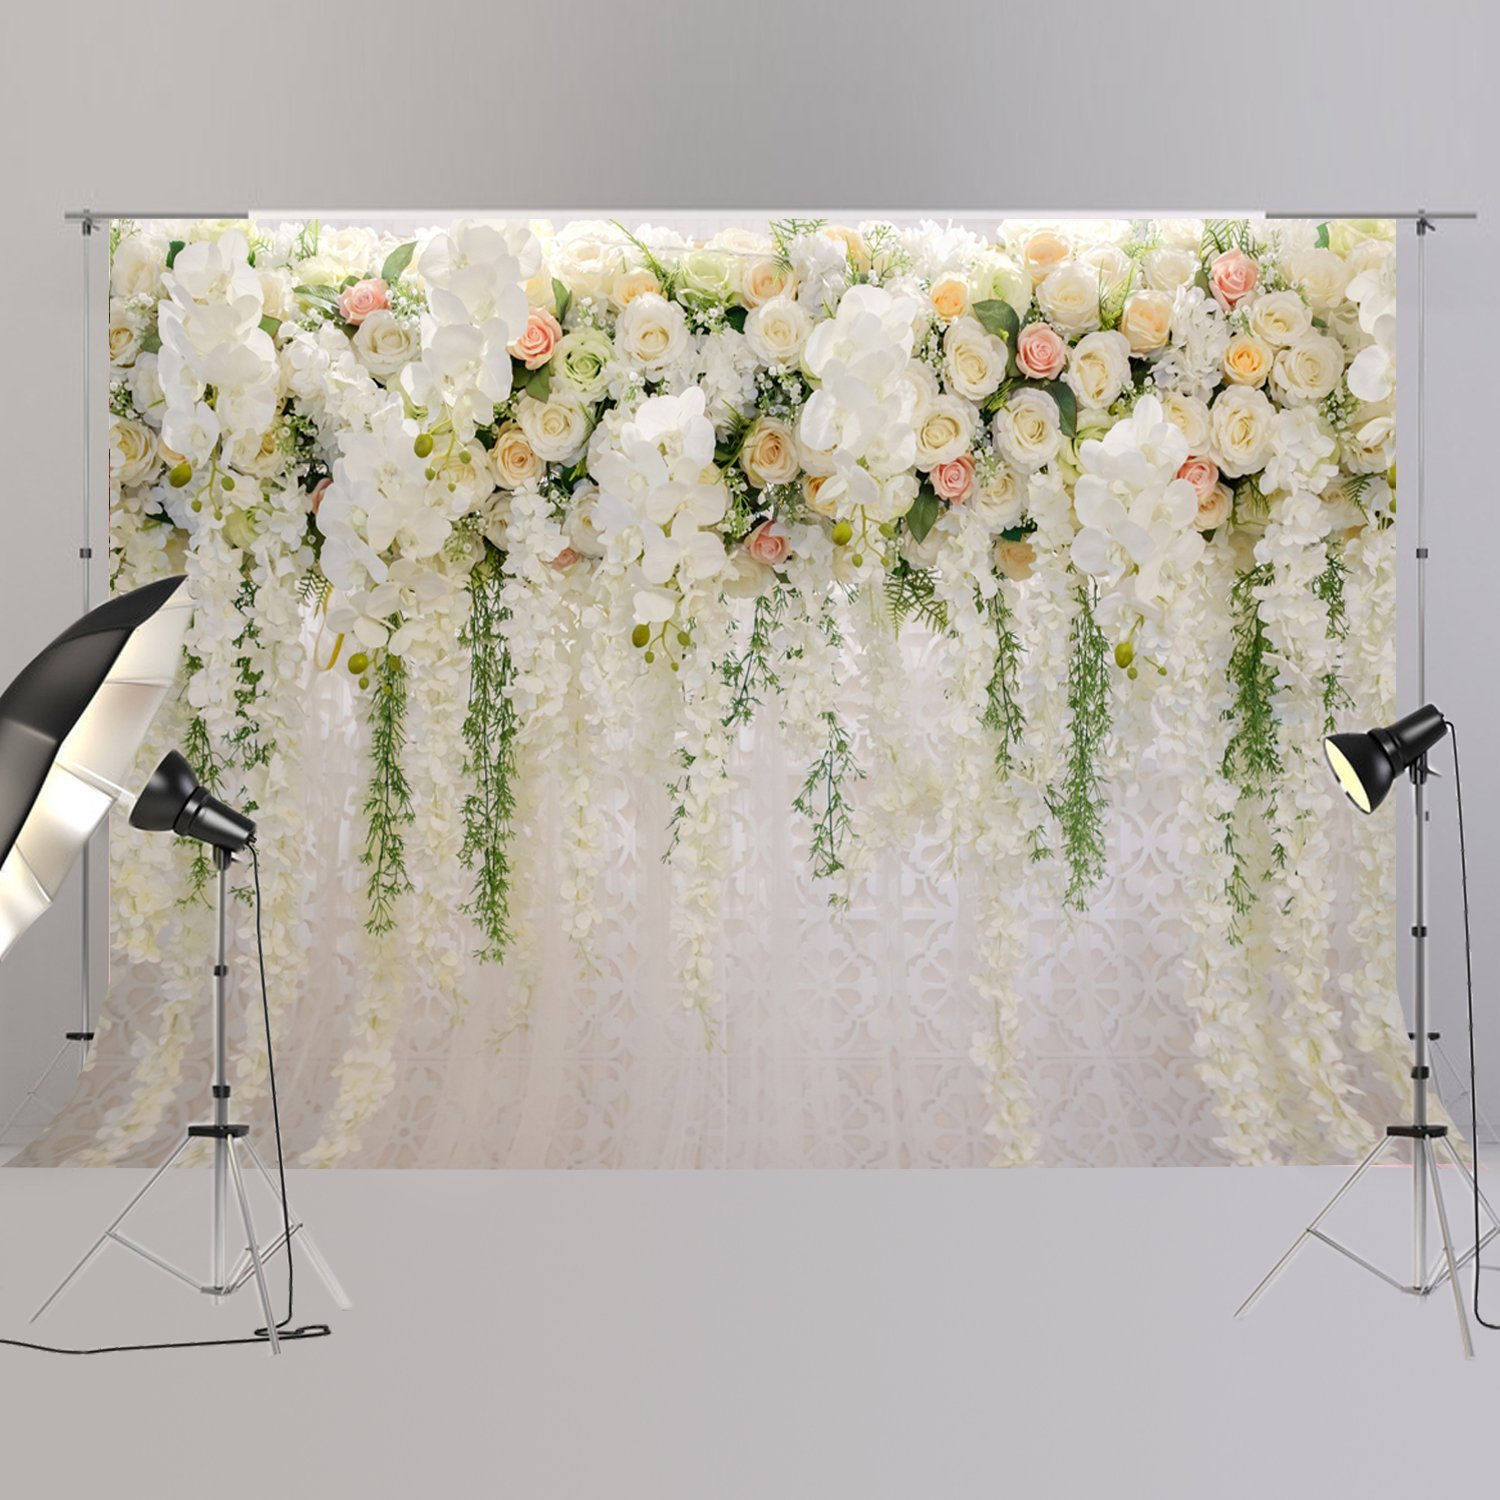 Bridal Shower Large Wedding Floral Backdrop White Rose 3D Flowers Dessert Table Decoration Wister Photography Background XT-6749